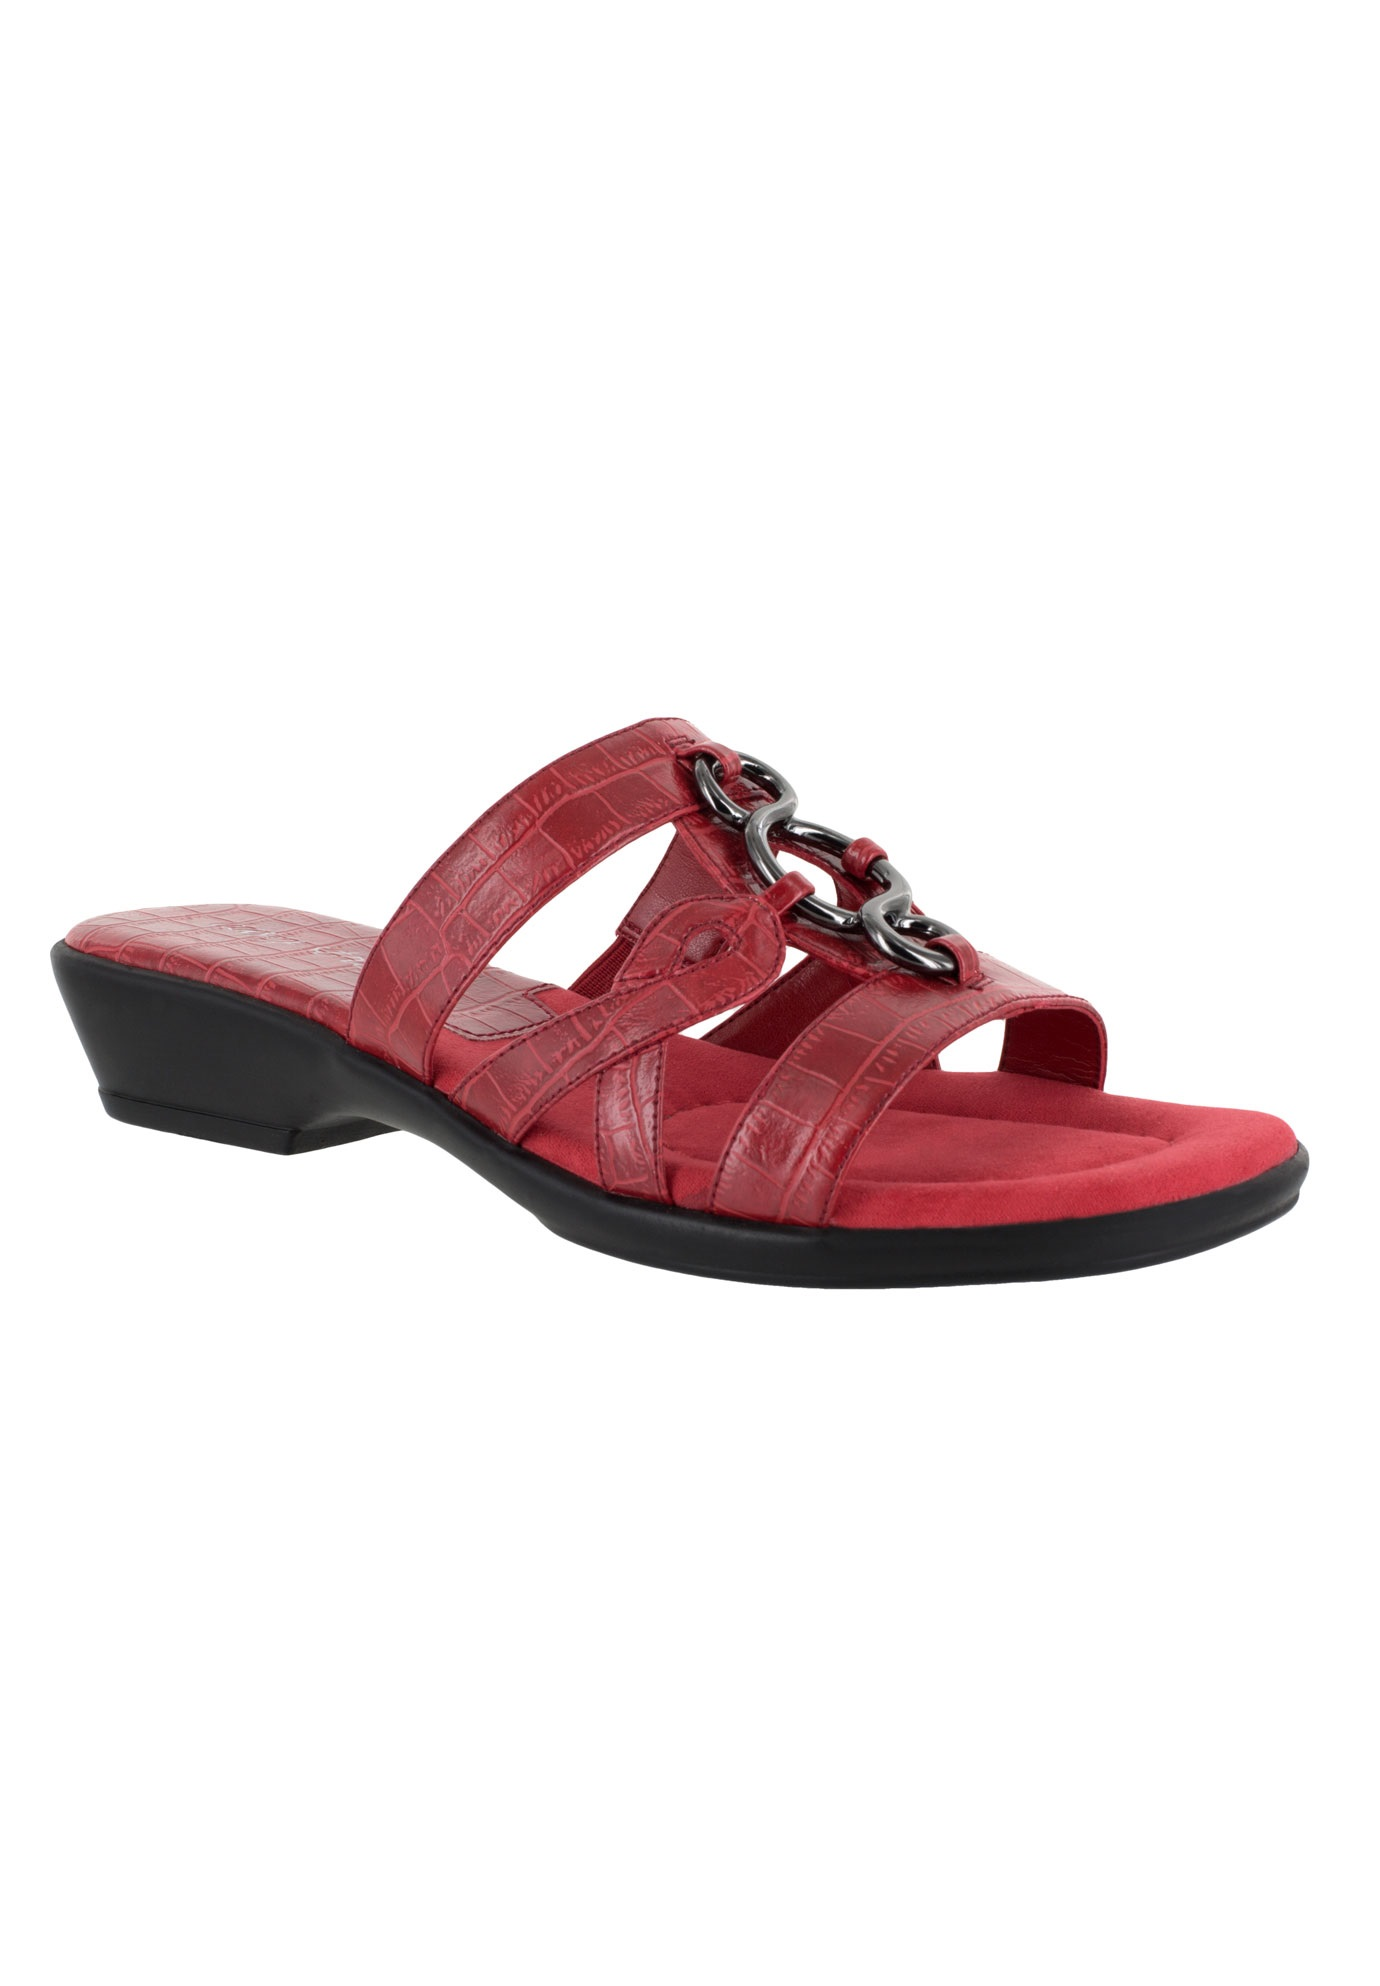 Torrid Sandals by Easy Street®,